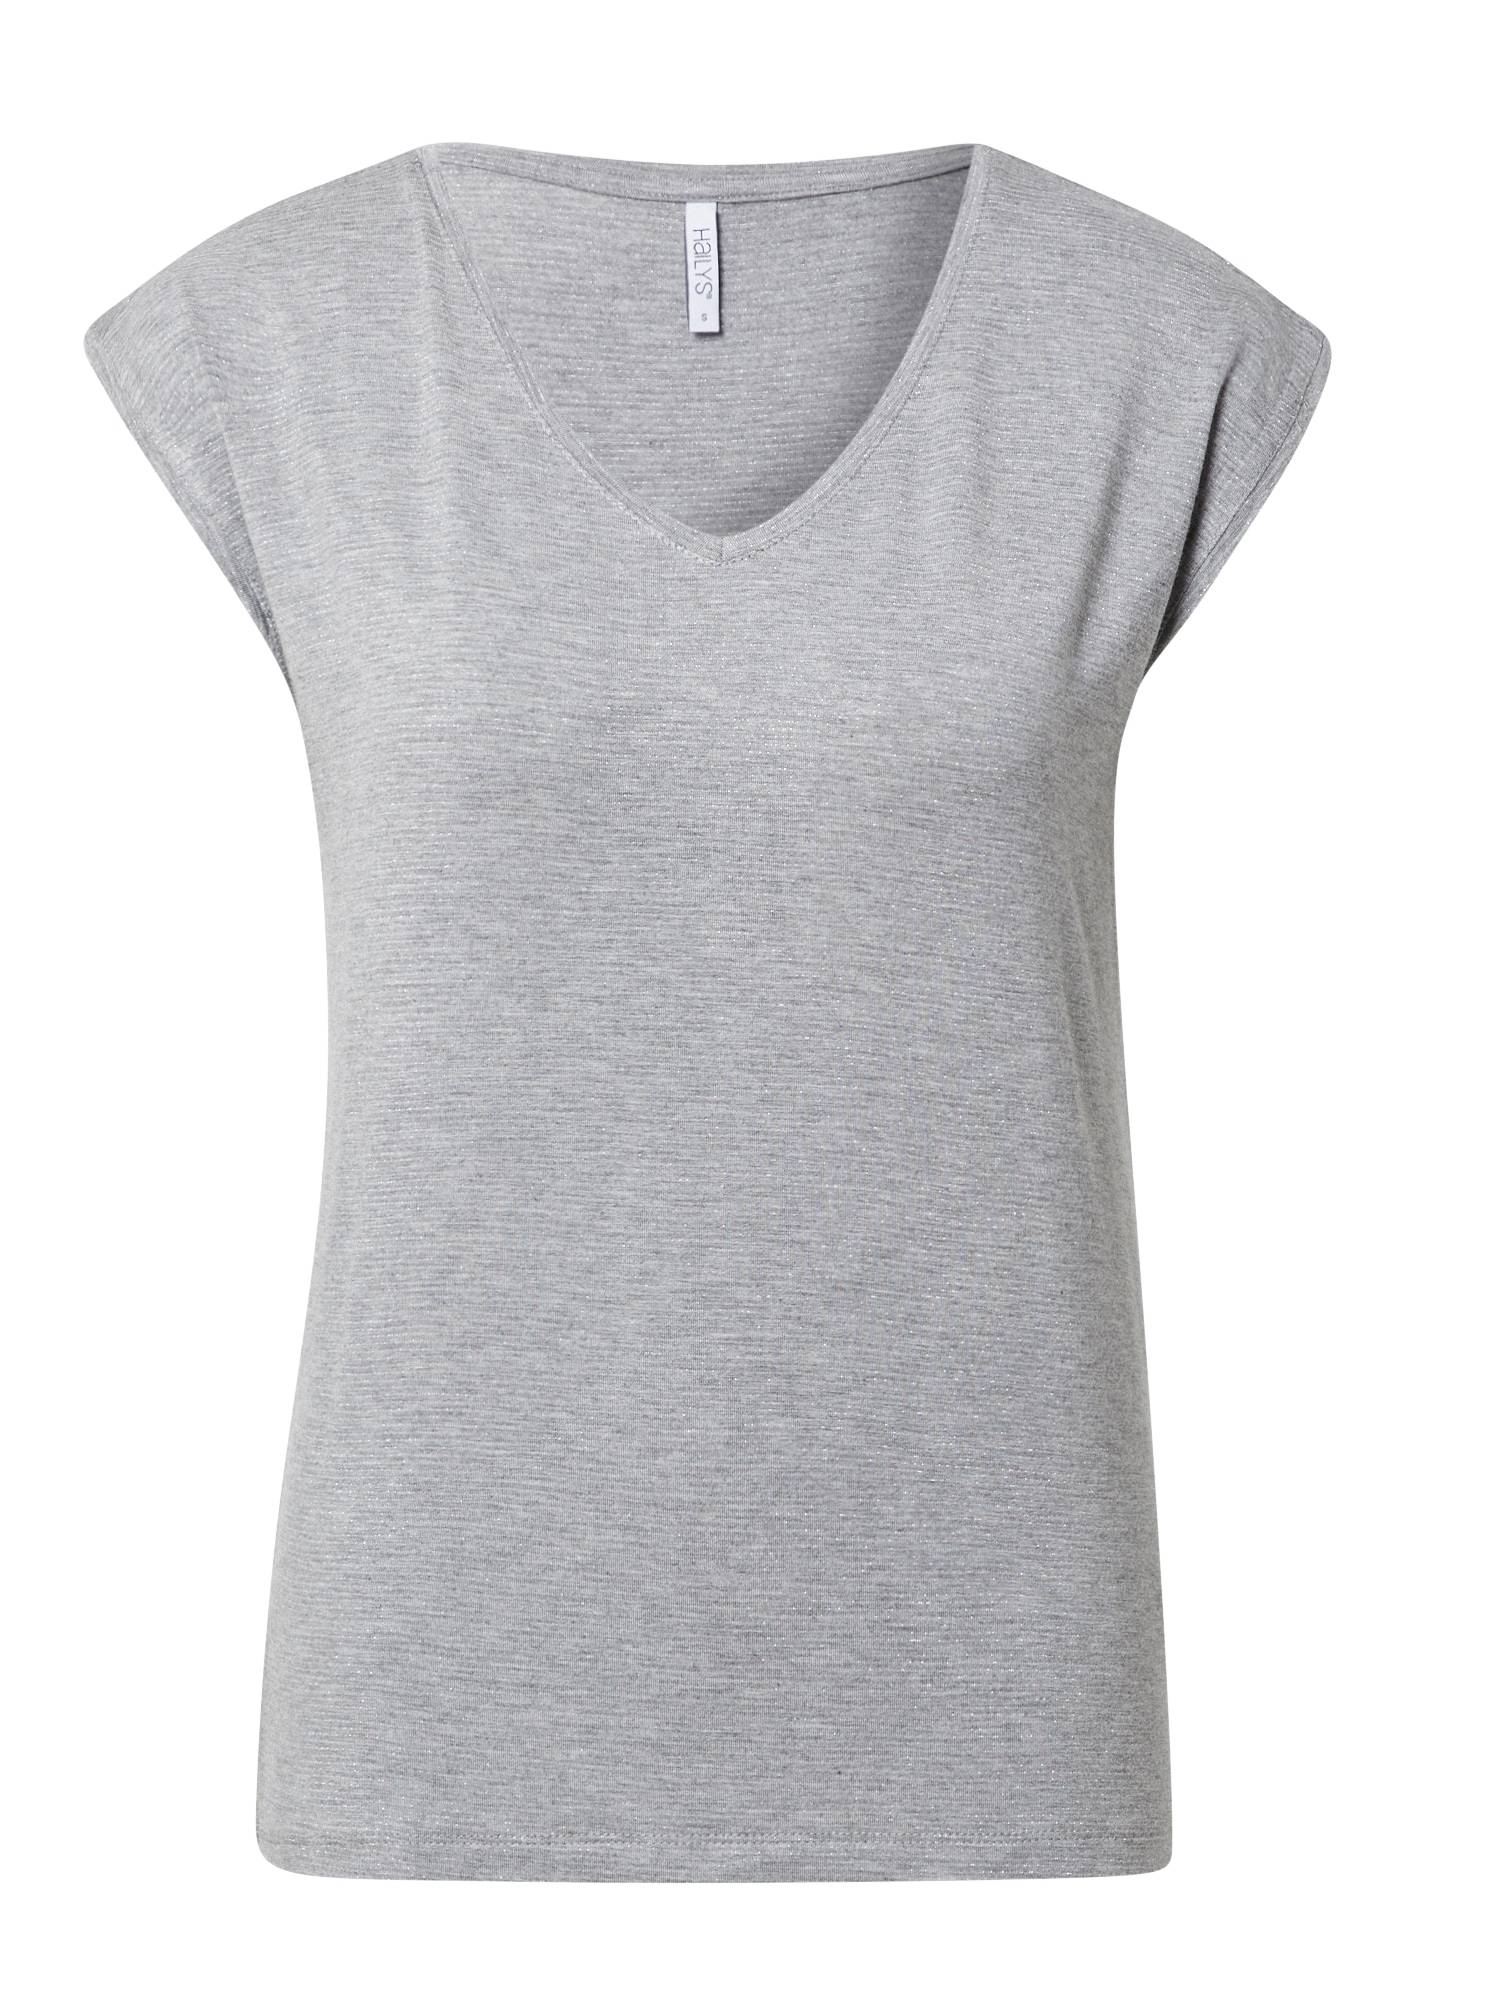 Hailys T-shirt 'TP Luxe'  - Gris - Taille: L - female